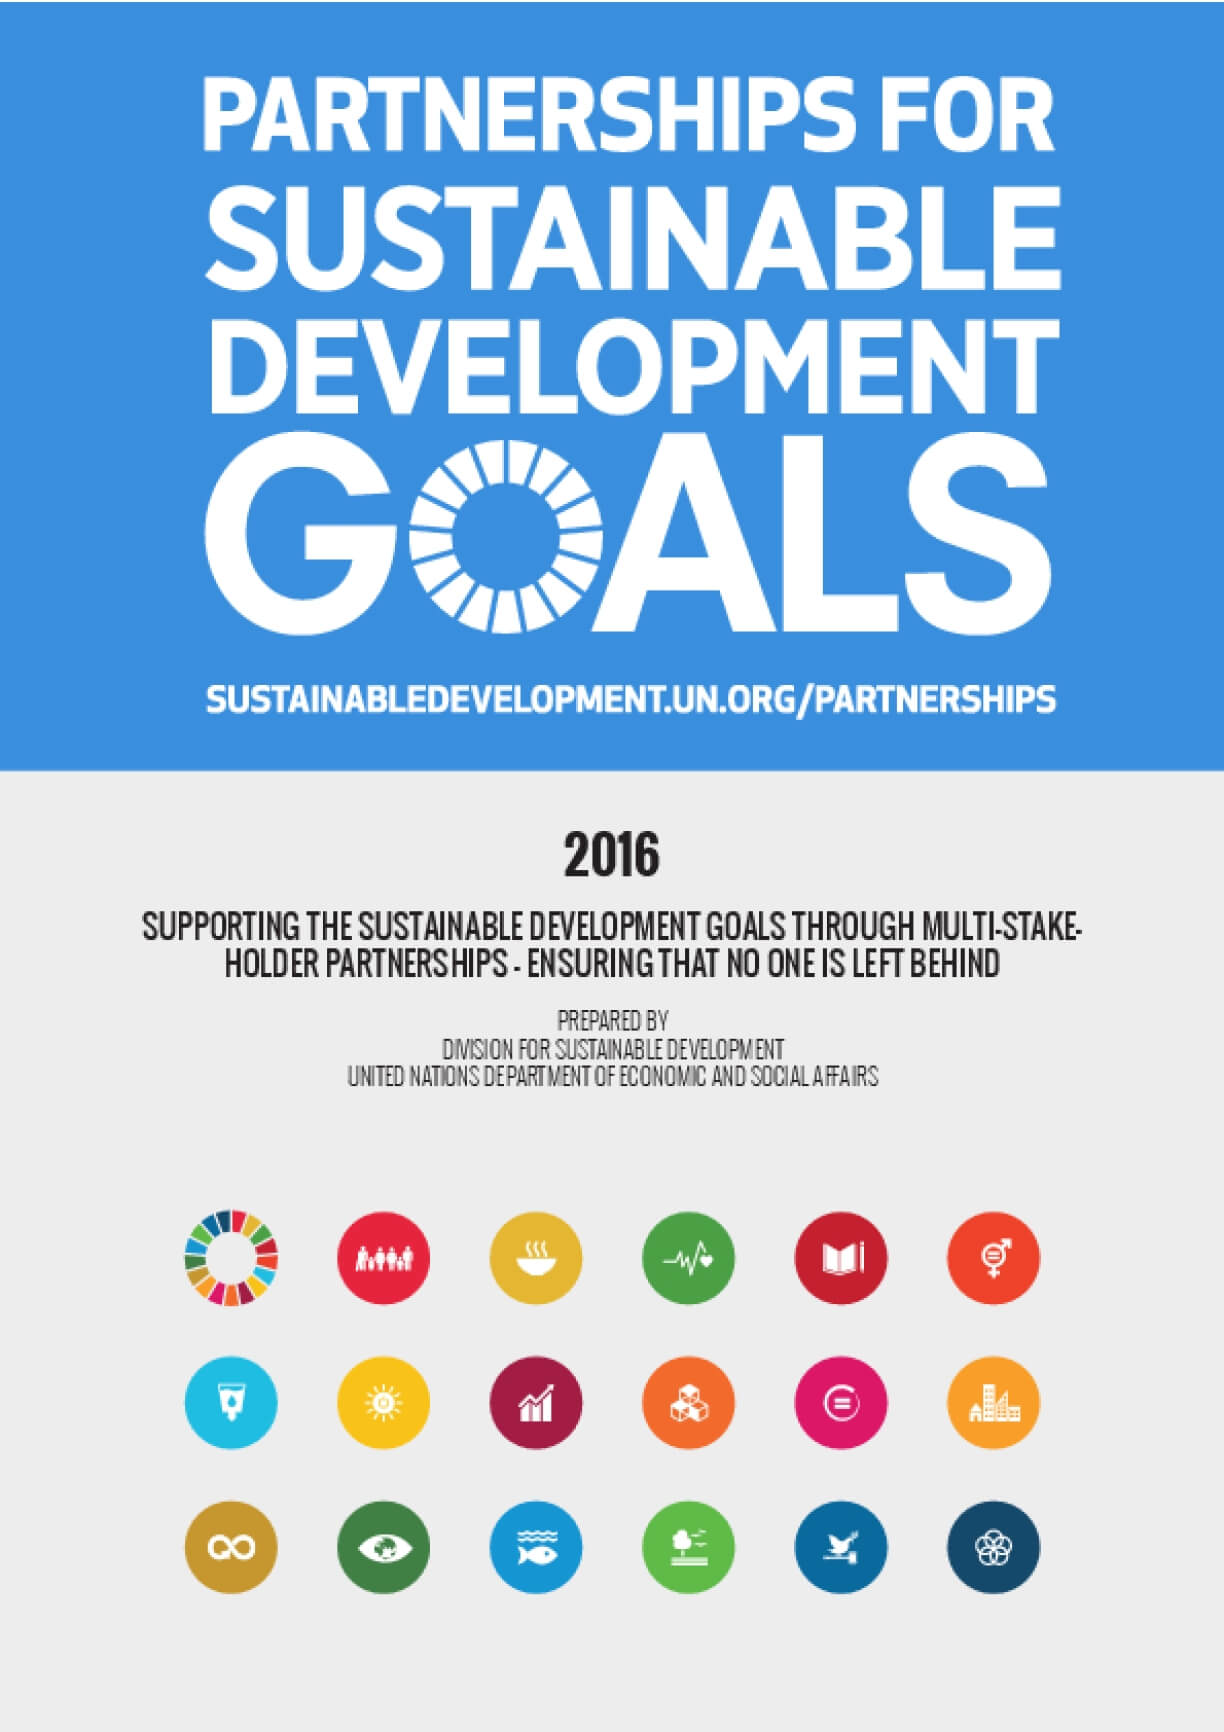 Partnerships for Sustainable Development Goals 2016